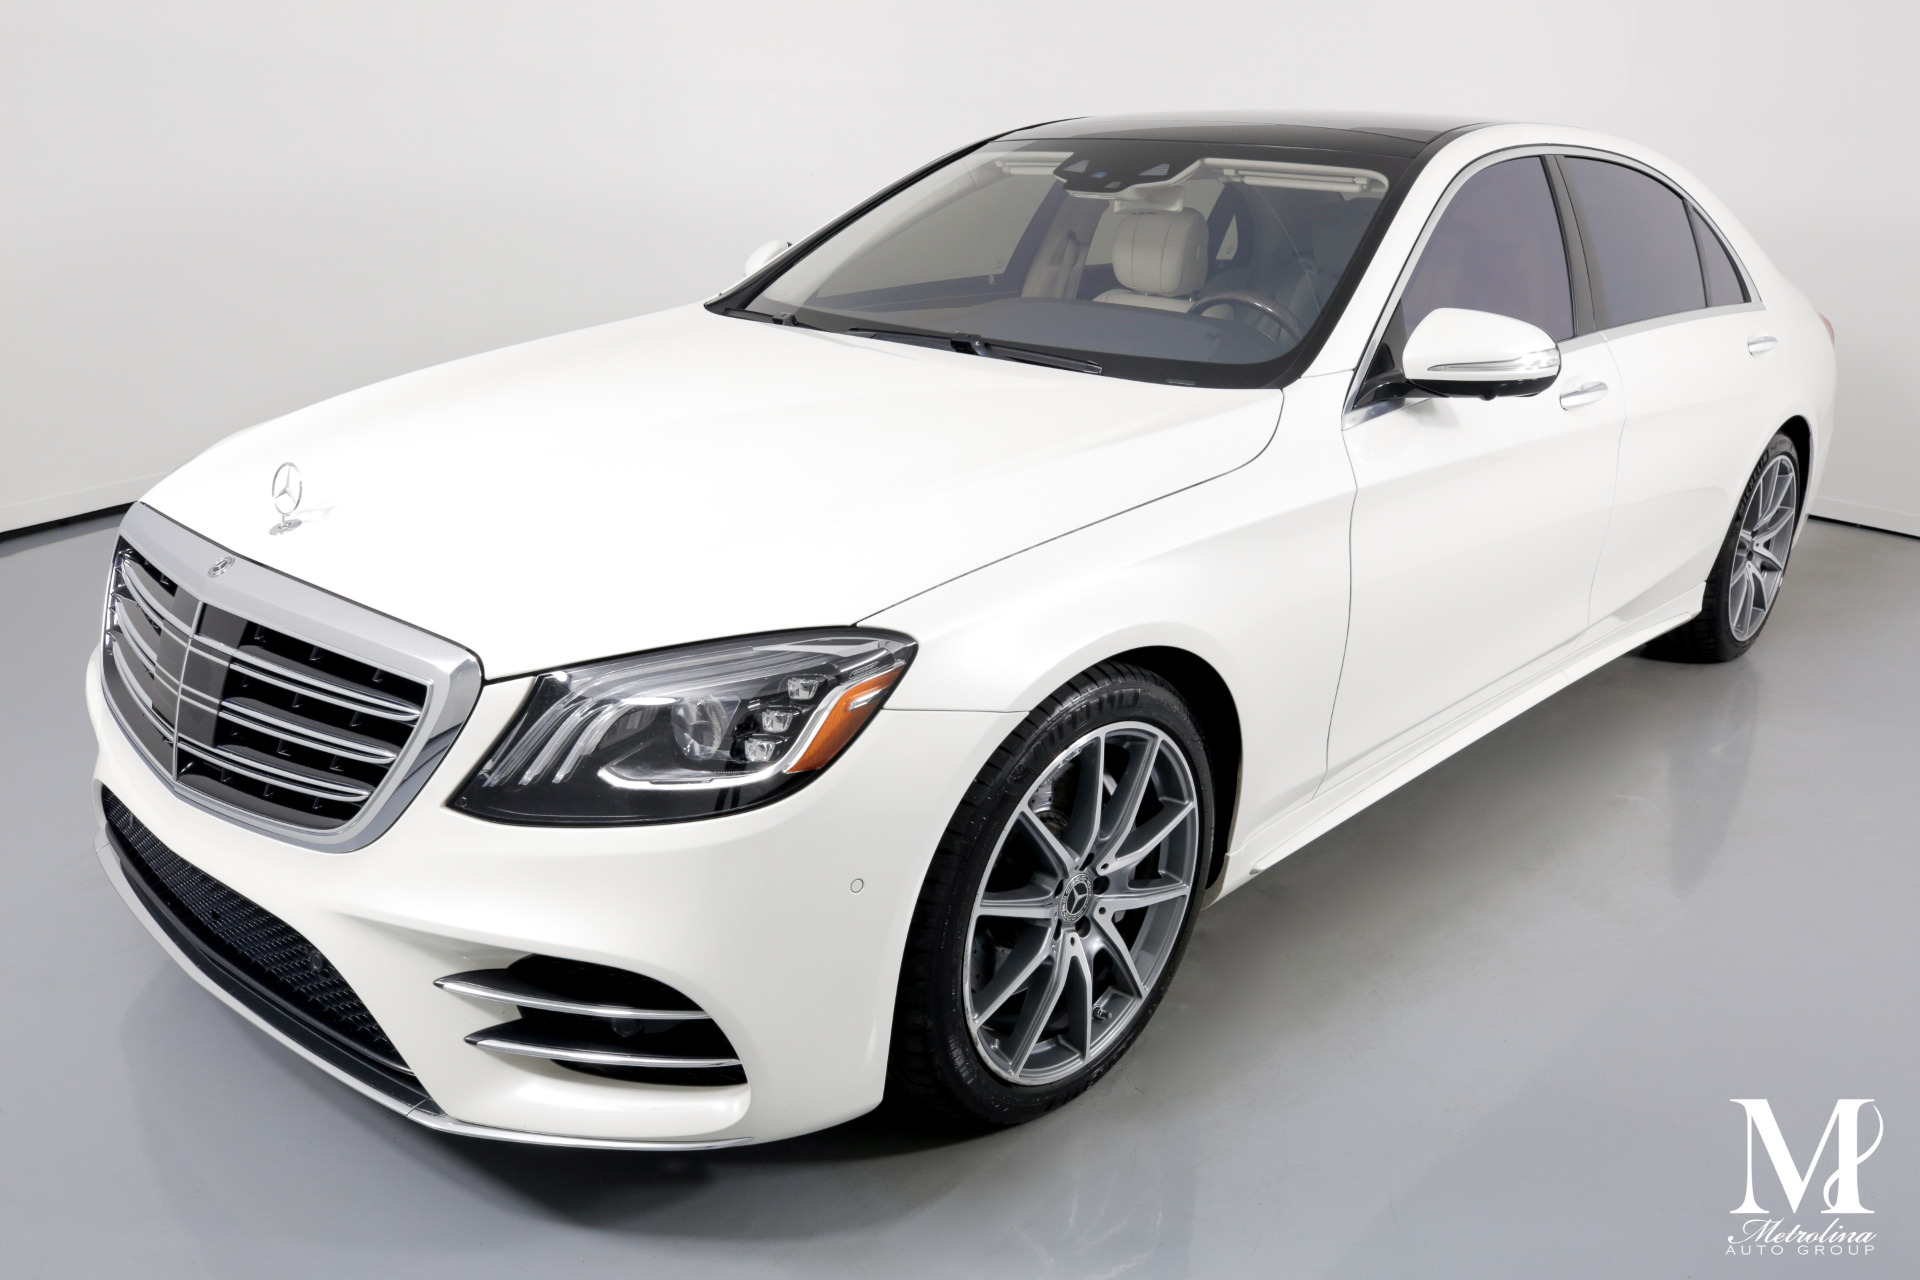 Used 2018 Mercedes-Benz S-Class S 560 4dr Sedan for sale Sold at Metrolina Auto Group in Charlotte NC 28217 - 4